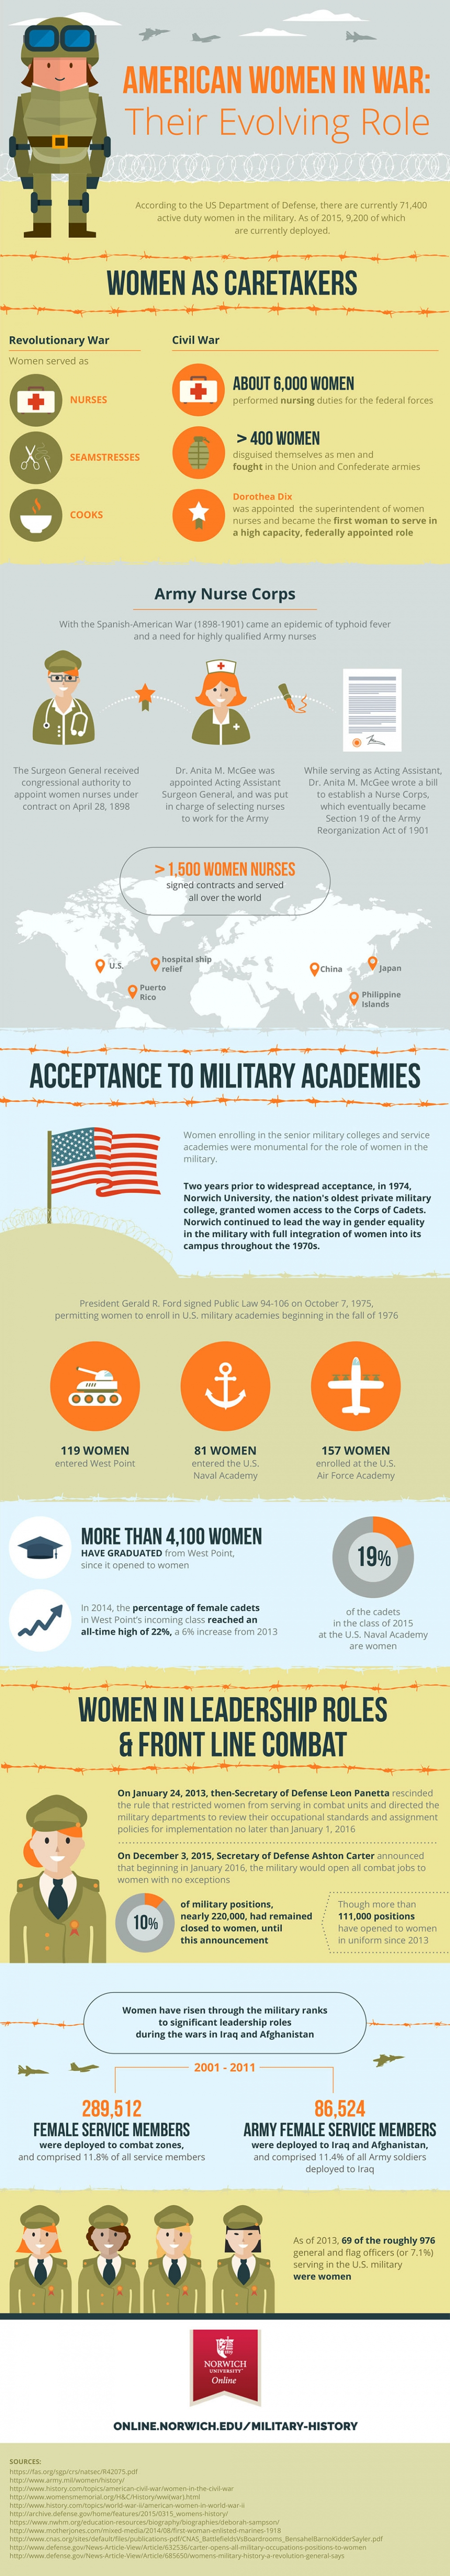 women in the military infographic image